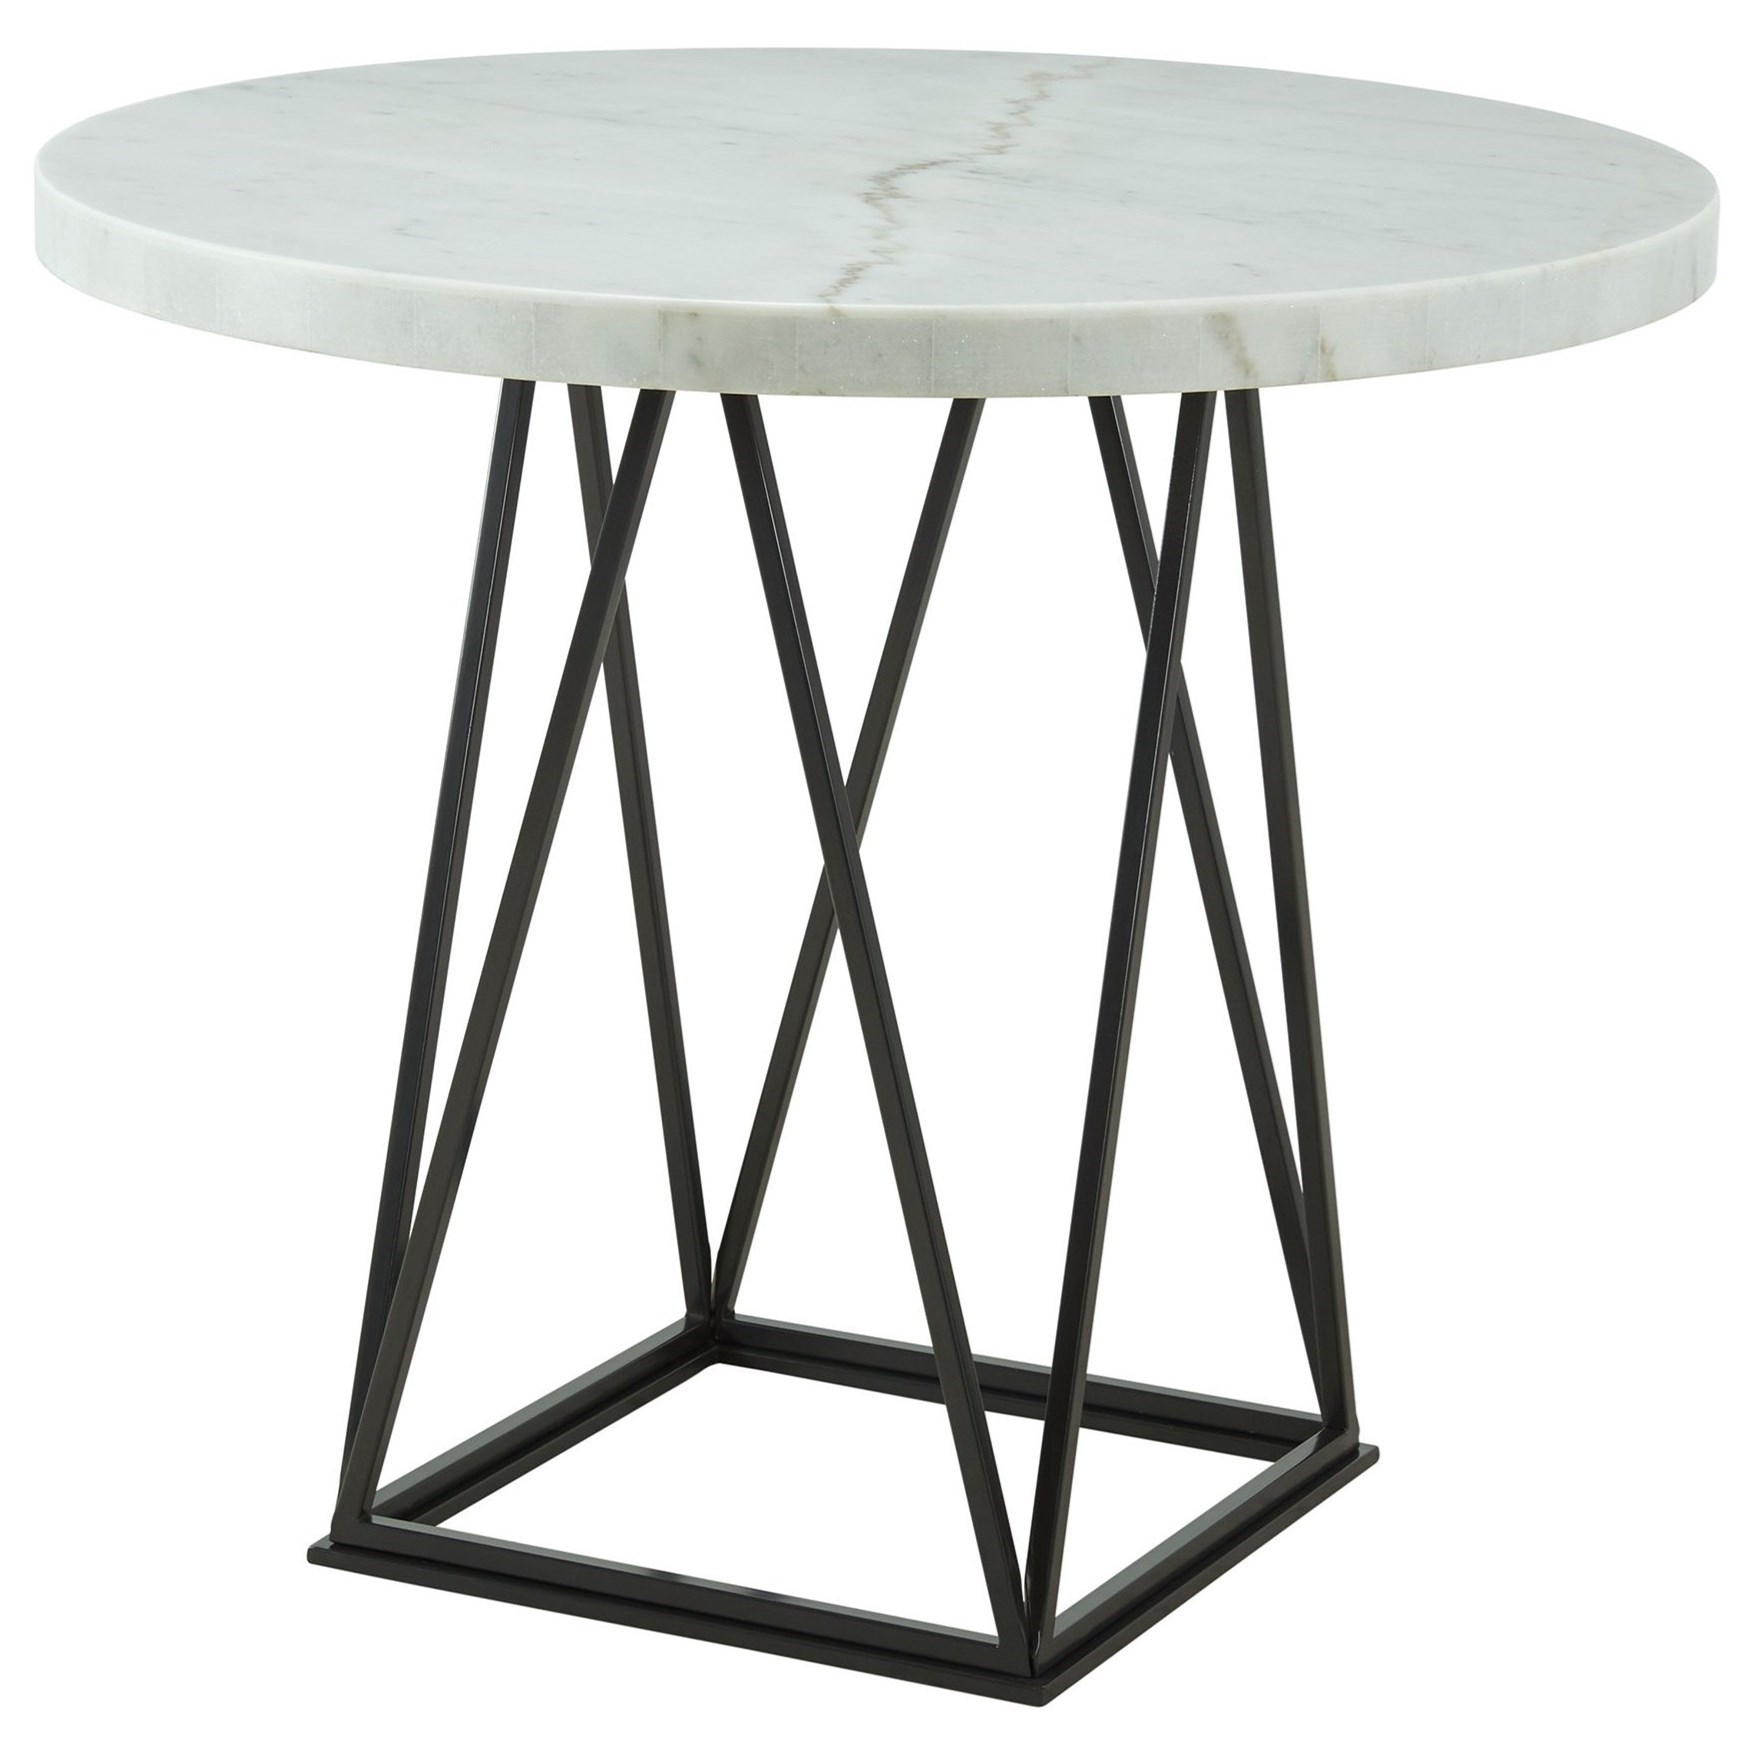 Elements International Riko Round Counter Height Dining Table With Marble Top Lindy S Furniture Company Pub Tables